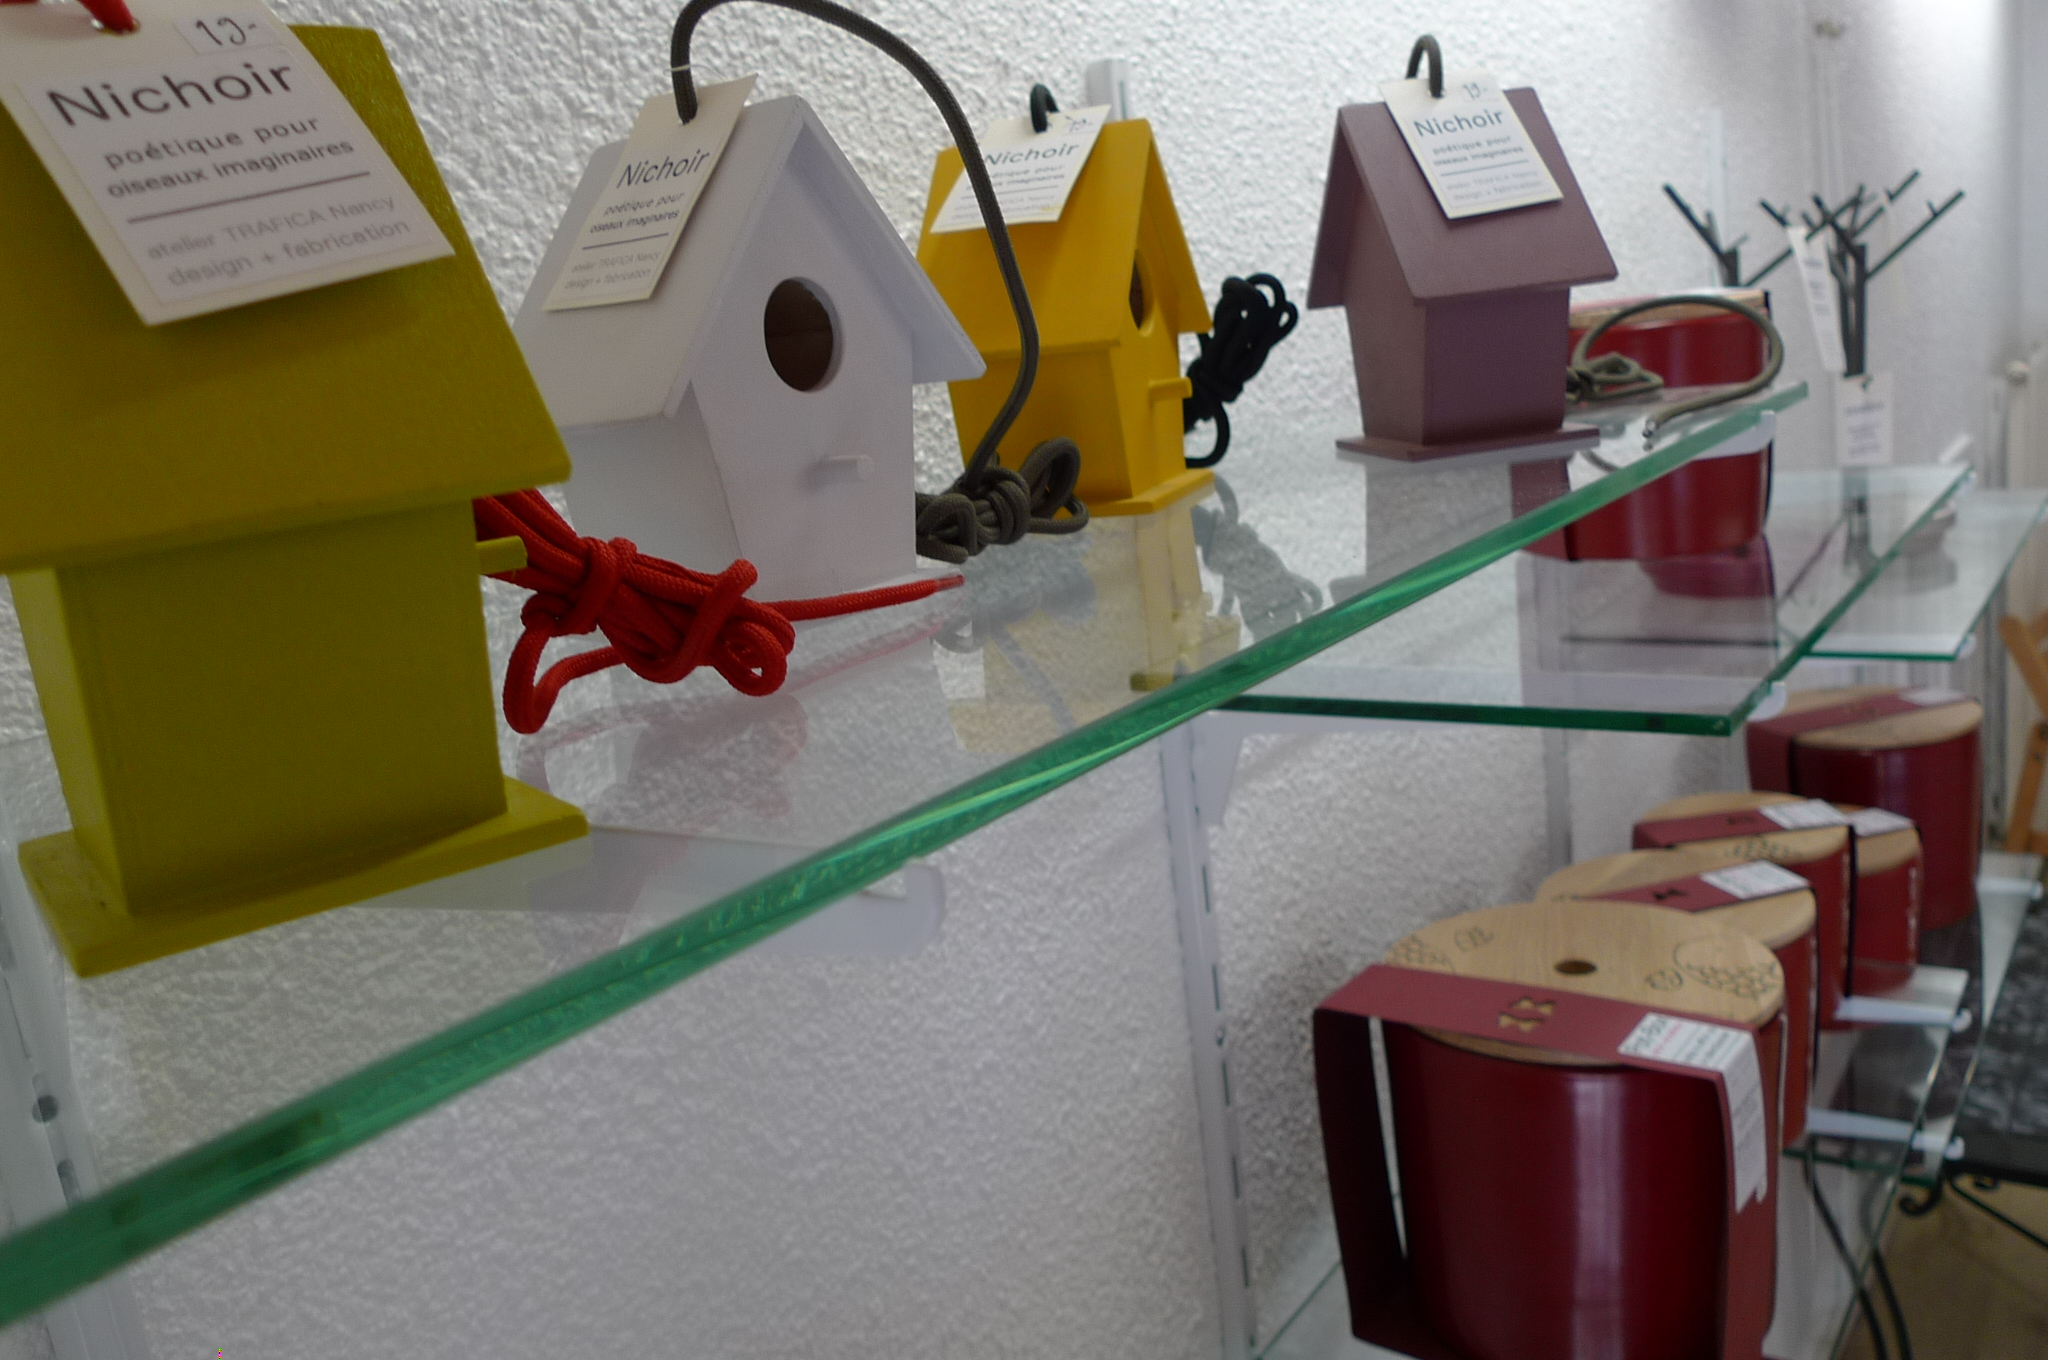 Atelier trafica nancynews expos passees - Chambre des metiers colmar ...